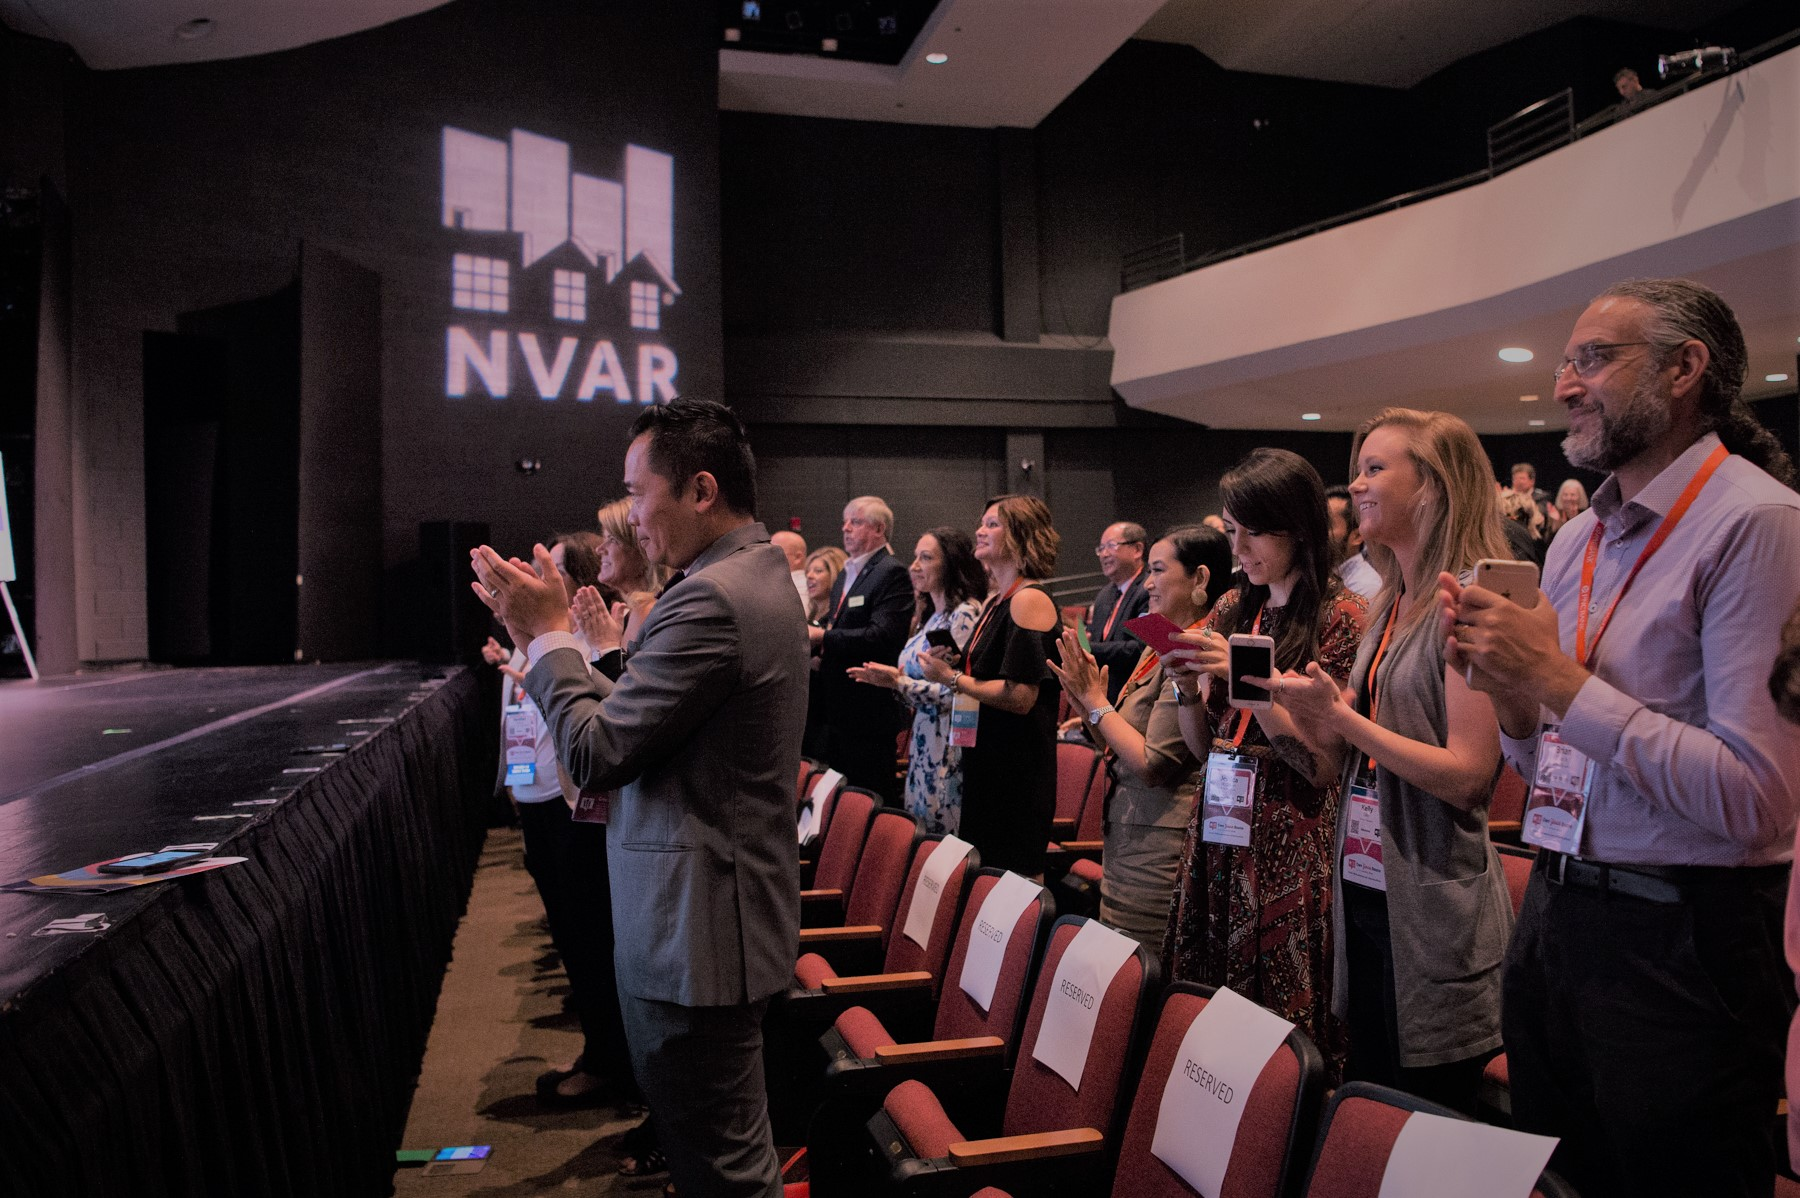 clapping at NVAR event